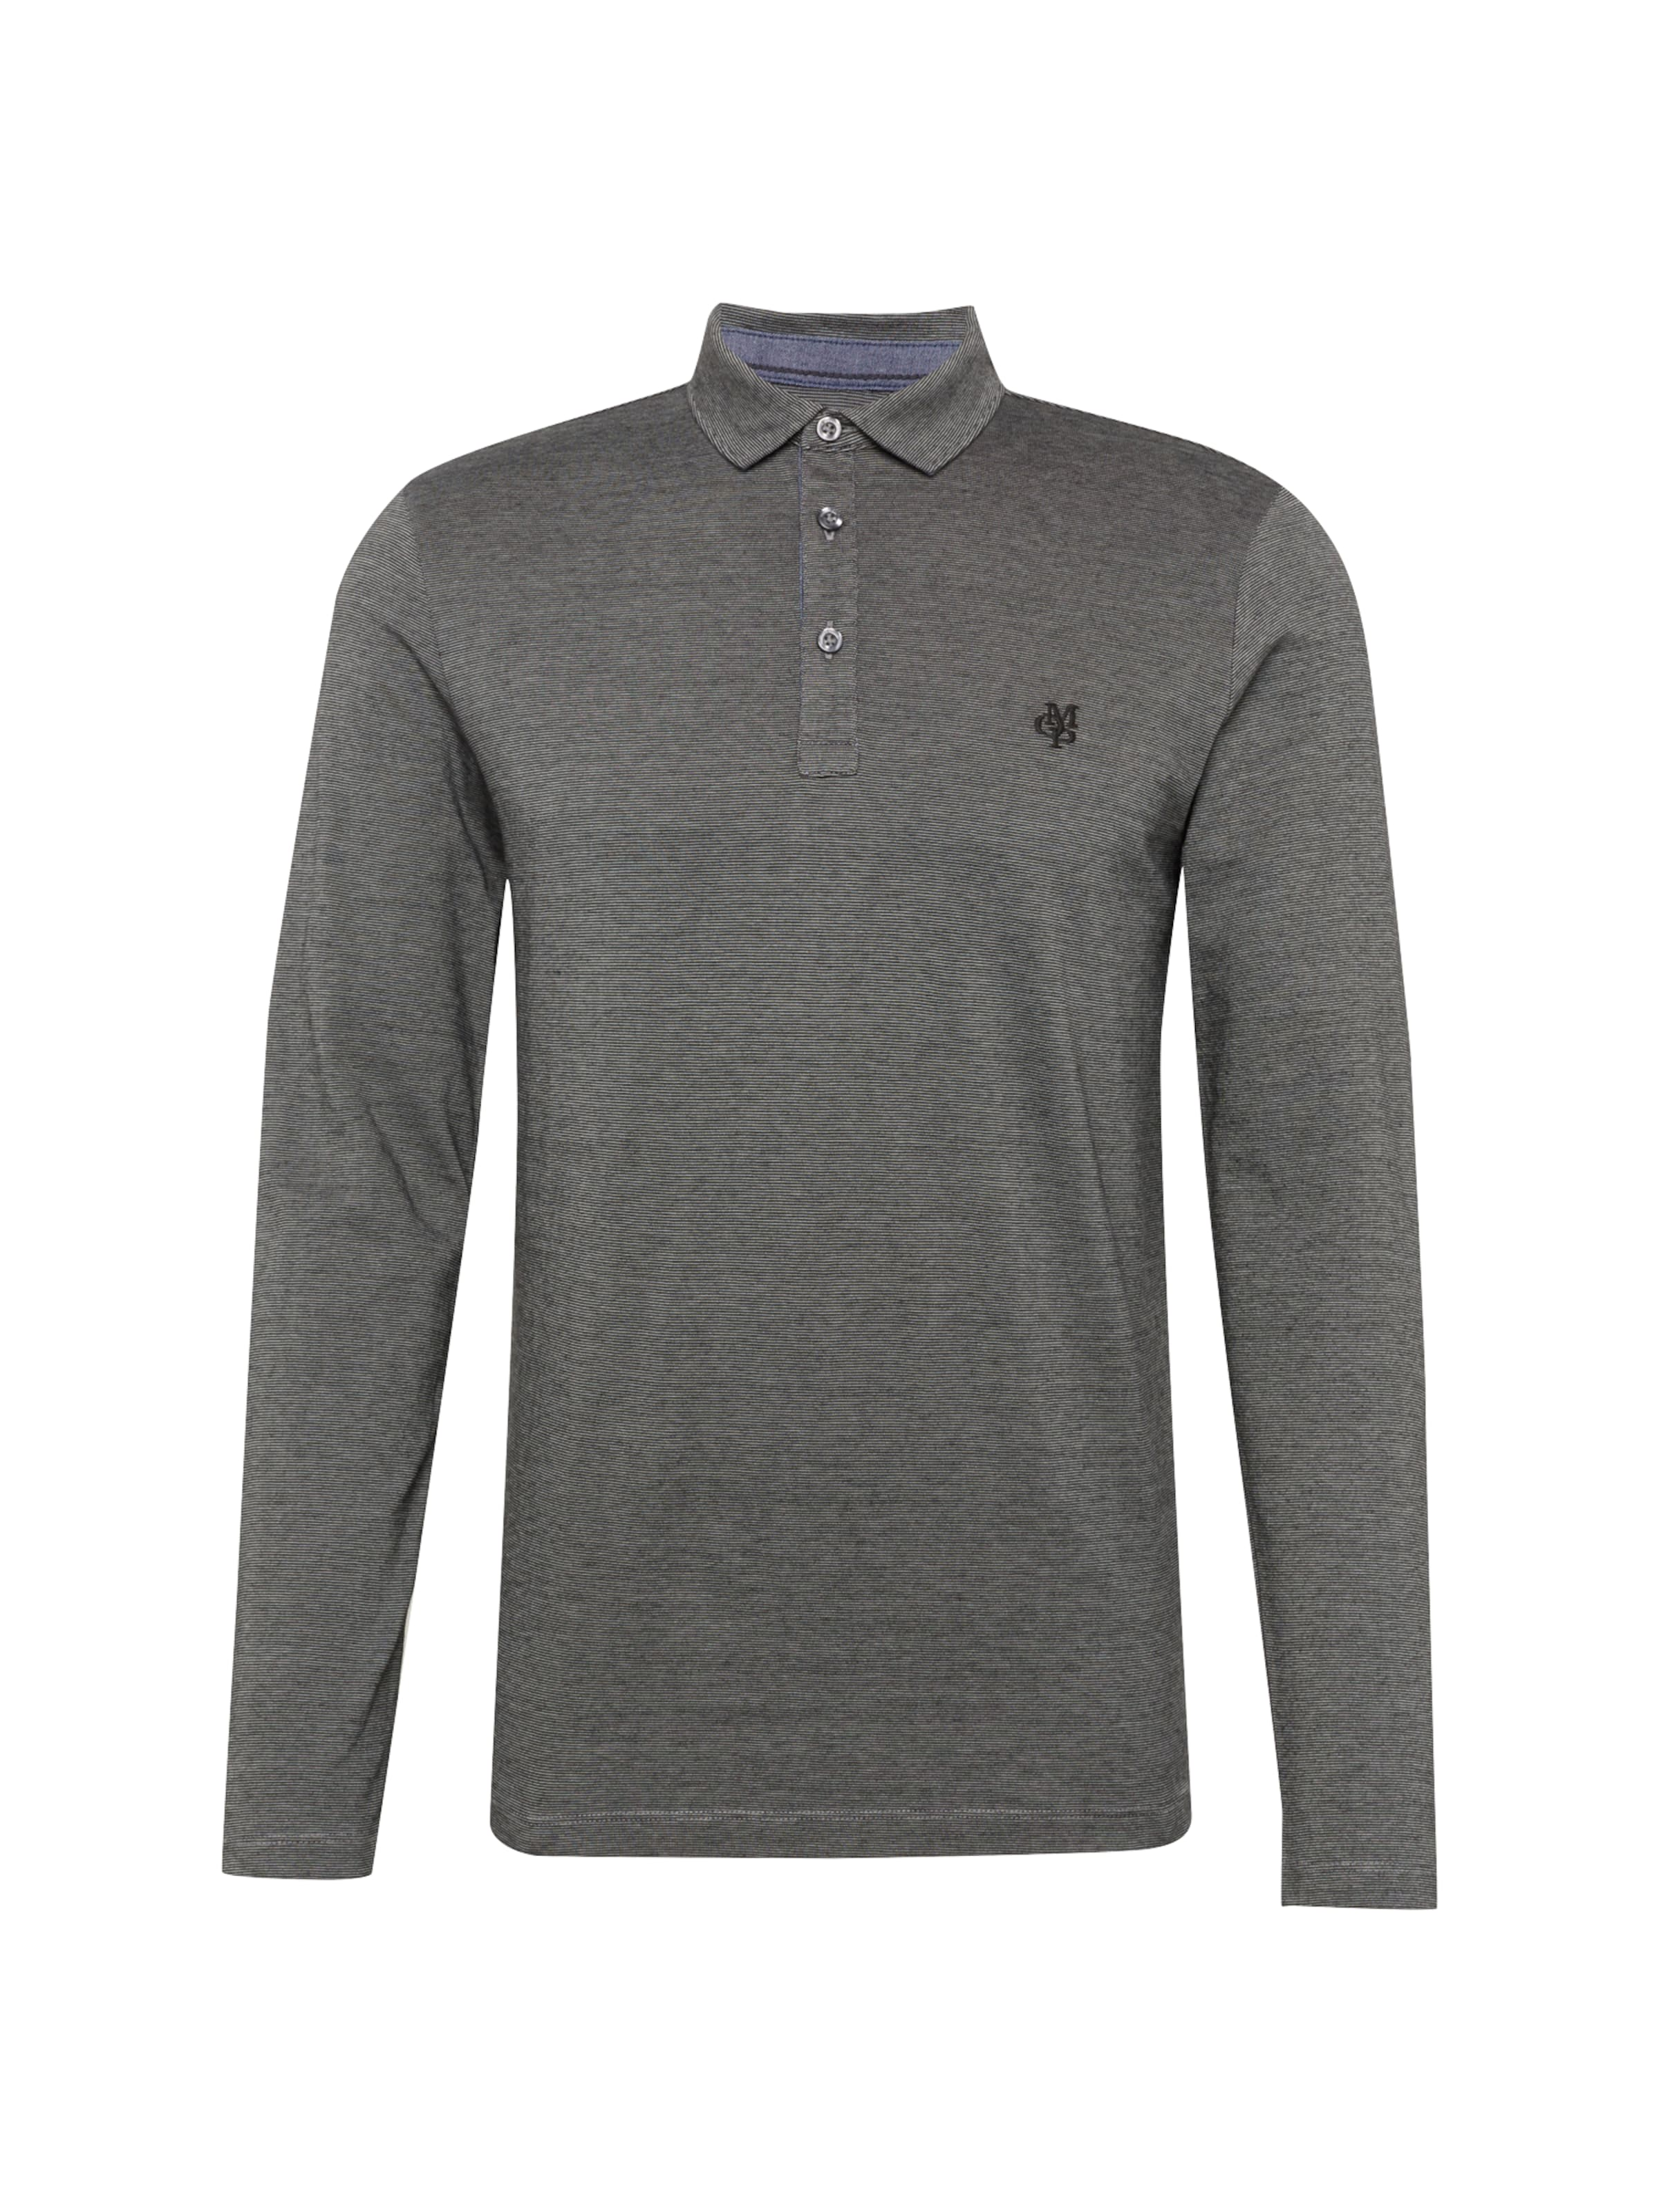 Graumeliert In O'polo Shirt Marc Marc Shirt O'polo 8knP0Ow